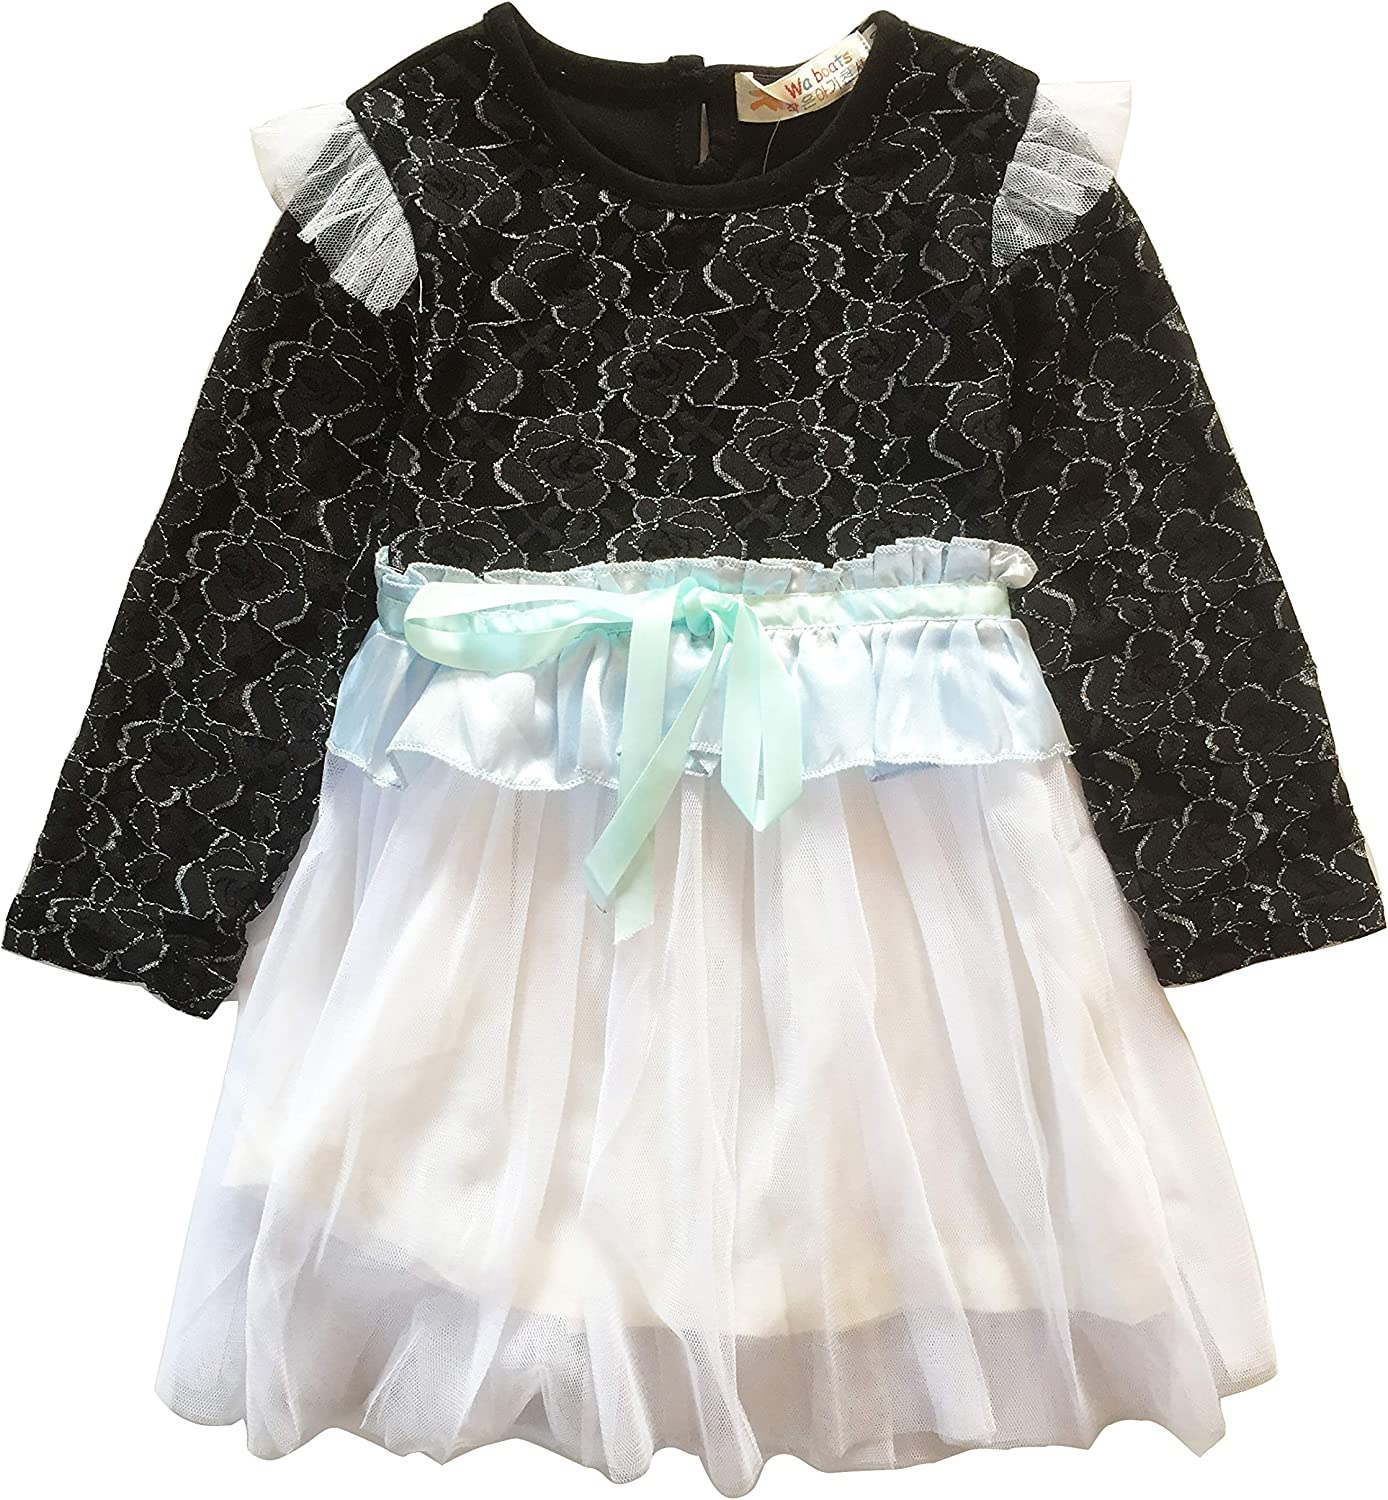 Beloved Lucia Girls Spring/&Fall Dresses Transparent Sleeves 2-6Y Black 2-3